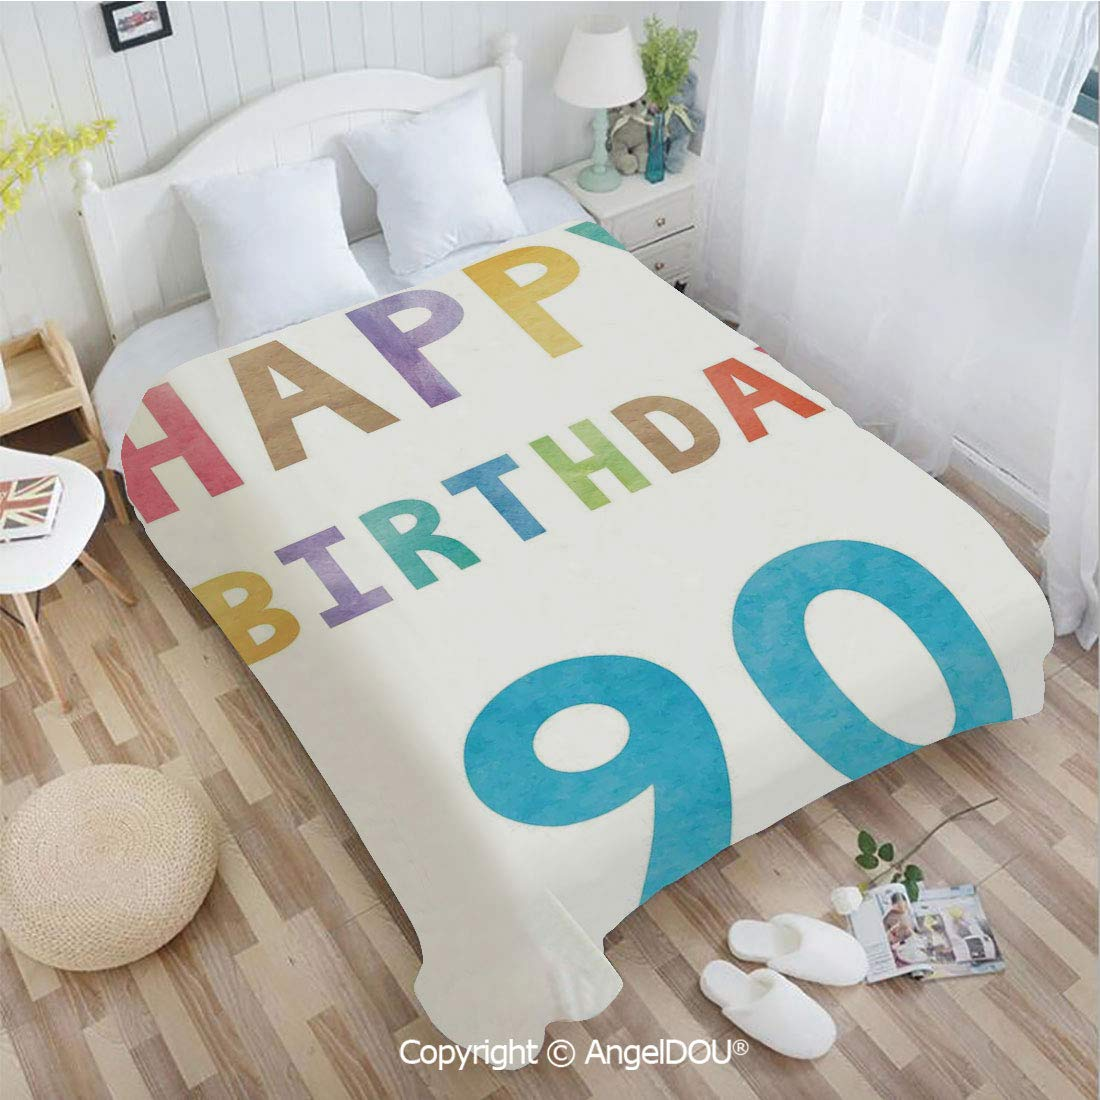 """AngelDOU Bedspread Portable Car Air Conditioner Blanket Happy Greeting Lettering in Watercolors Pastel Text Paint Image for Home Couch Outdoor Travel 31"""" Wx47 L"""